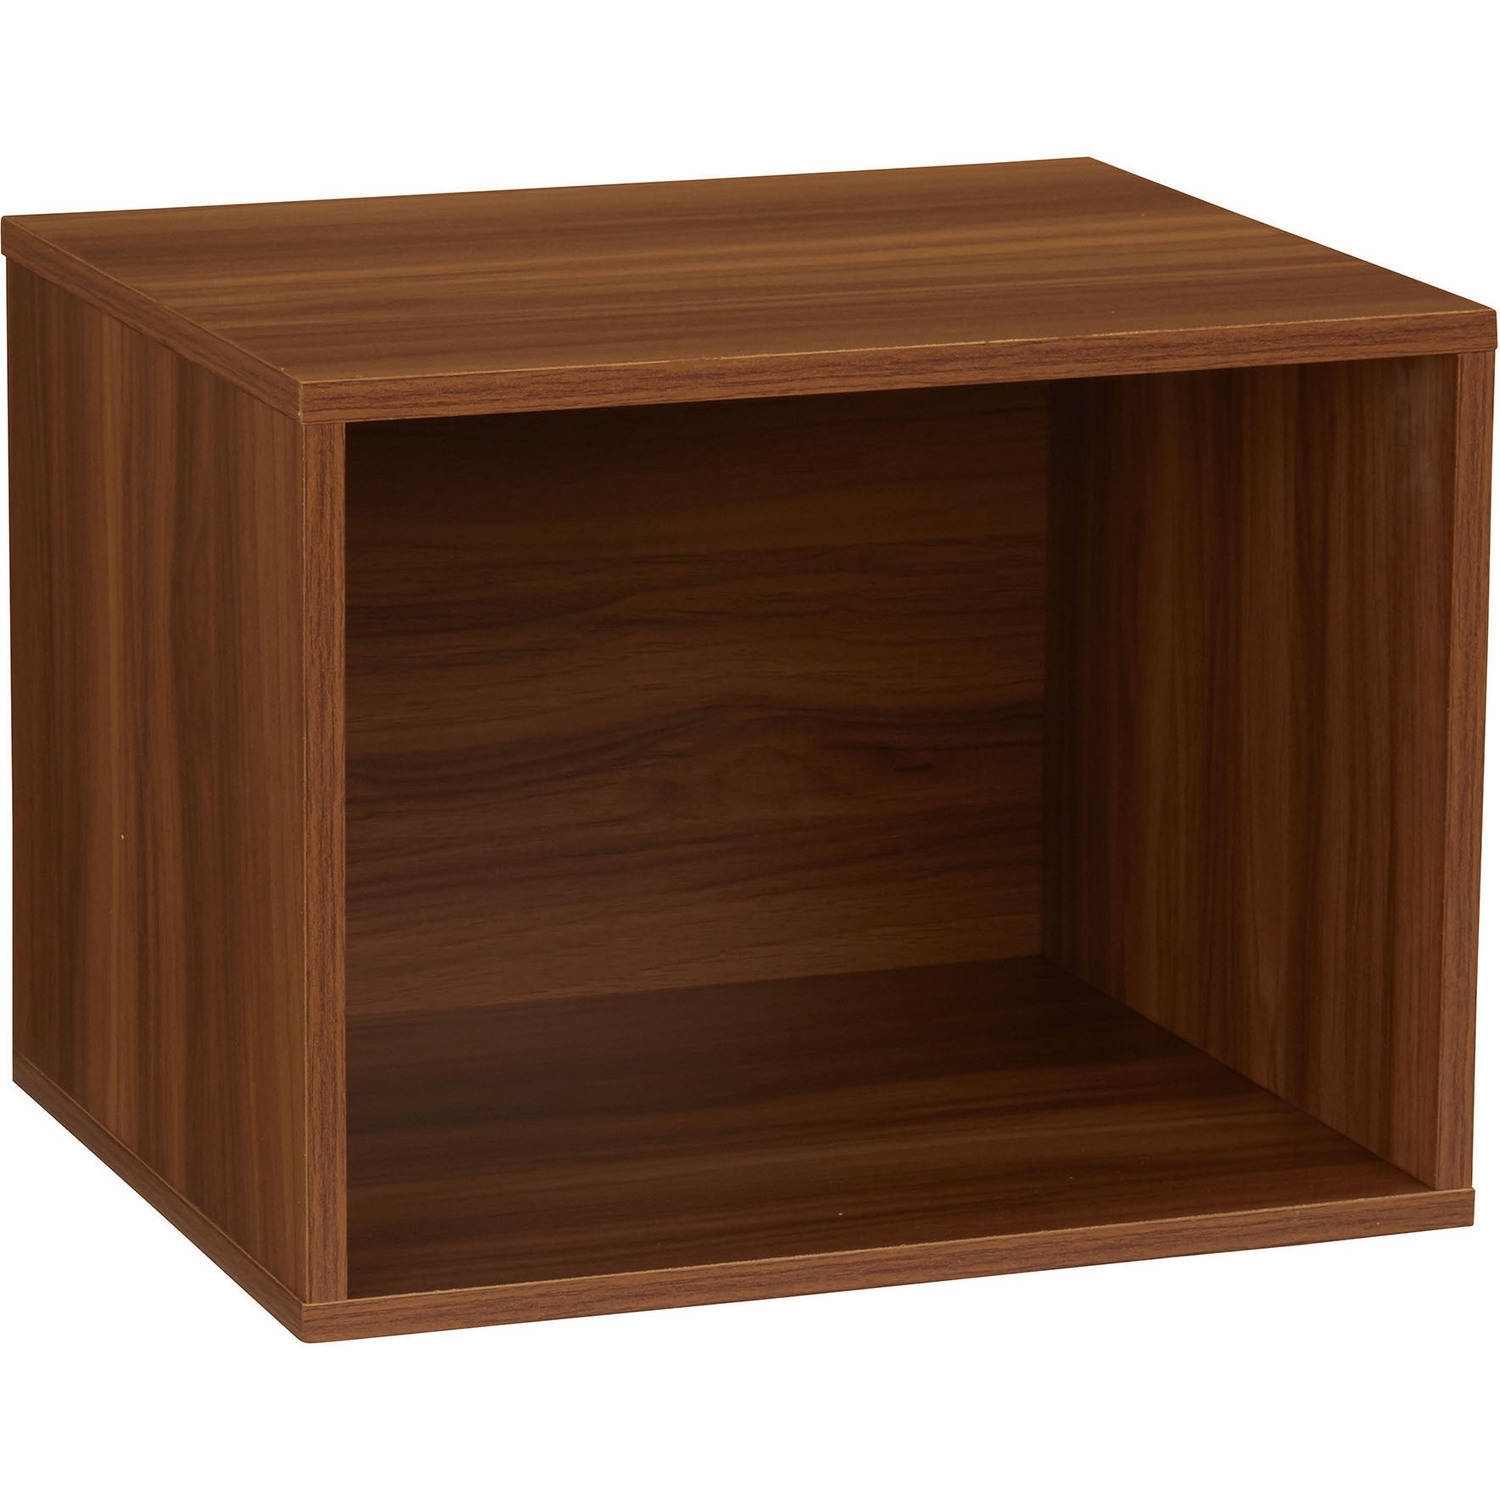 Household Essentials Single Cubby, Honey Maple